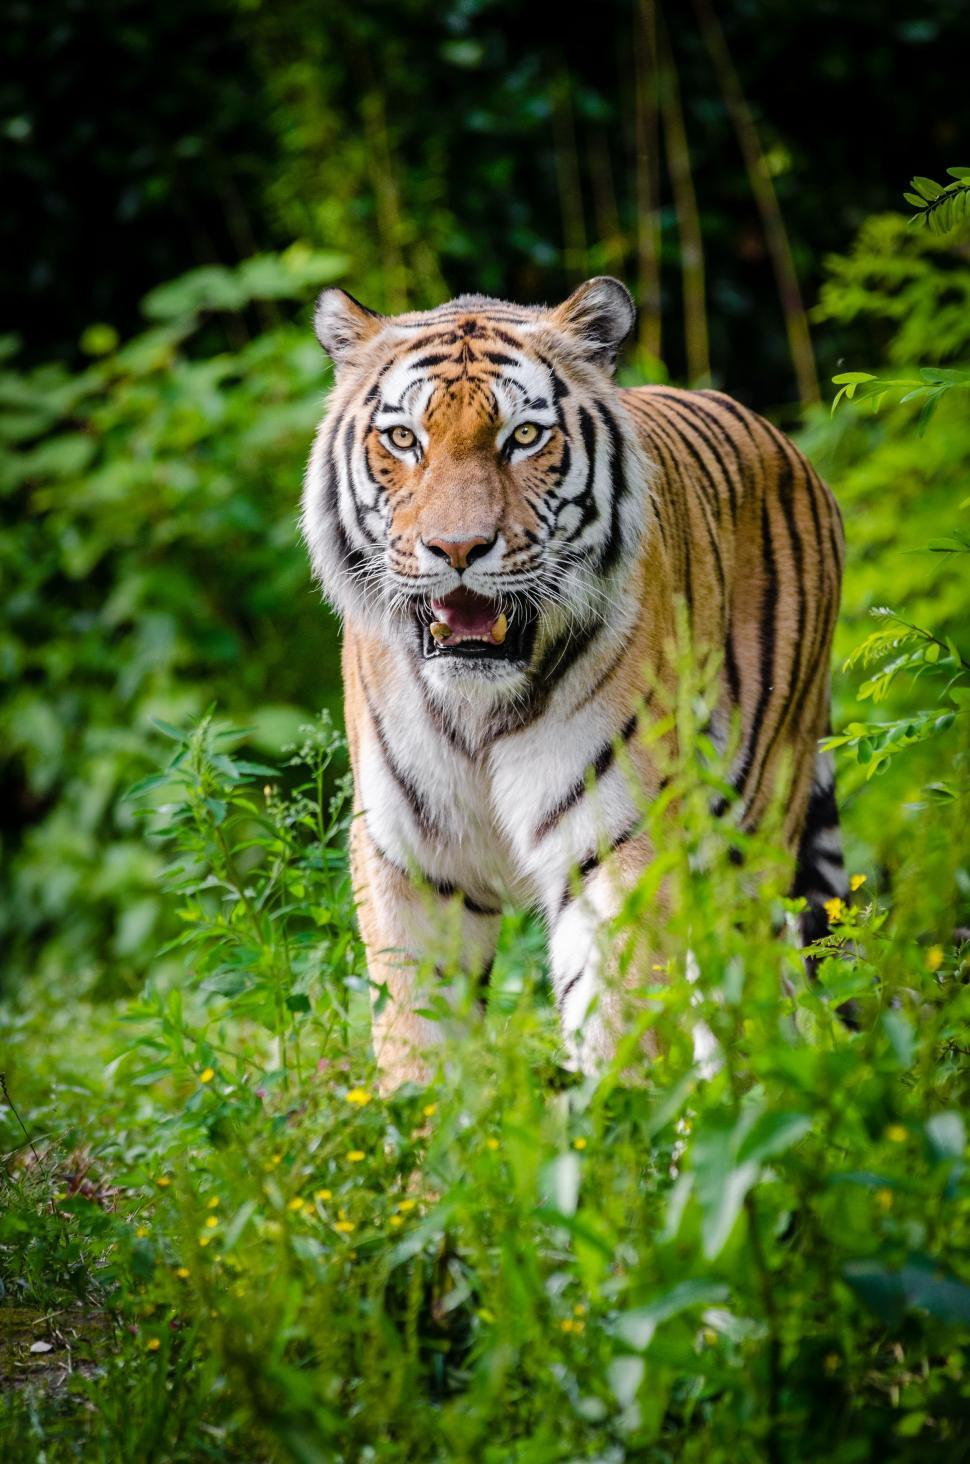 Download Free Stock Photo of View of Staring Tiger